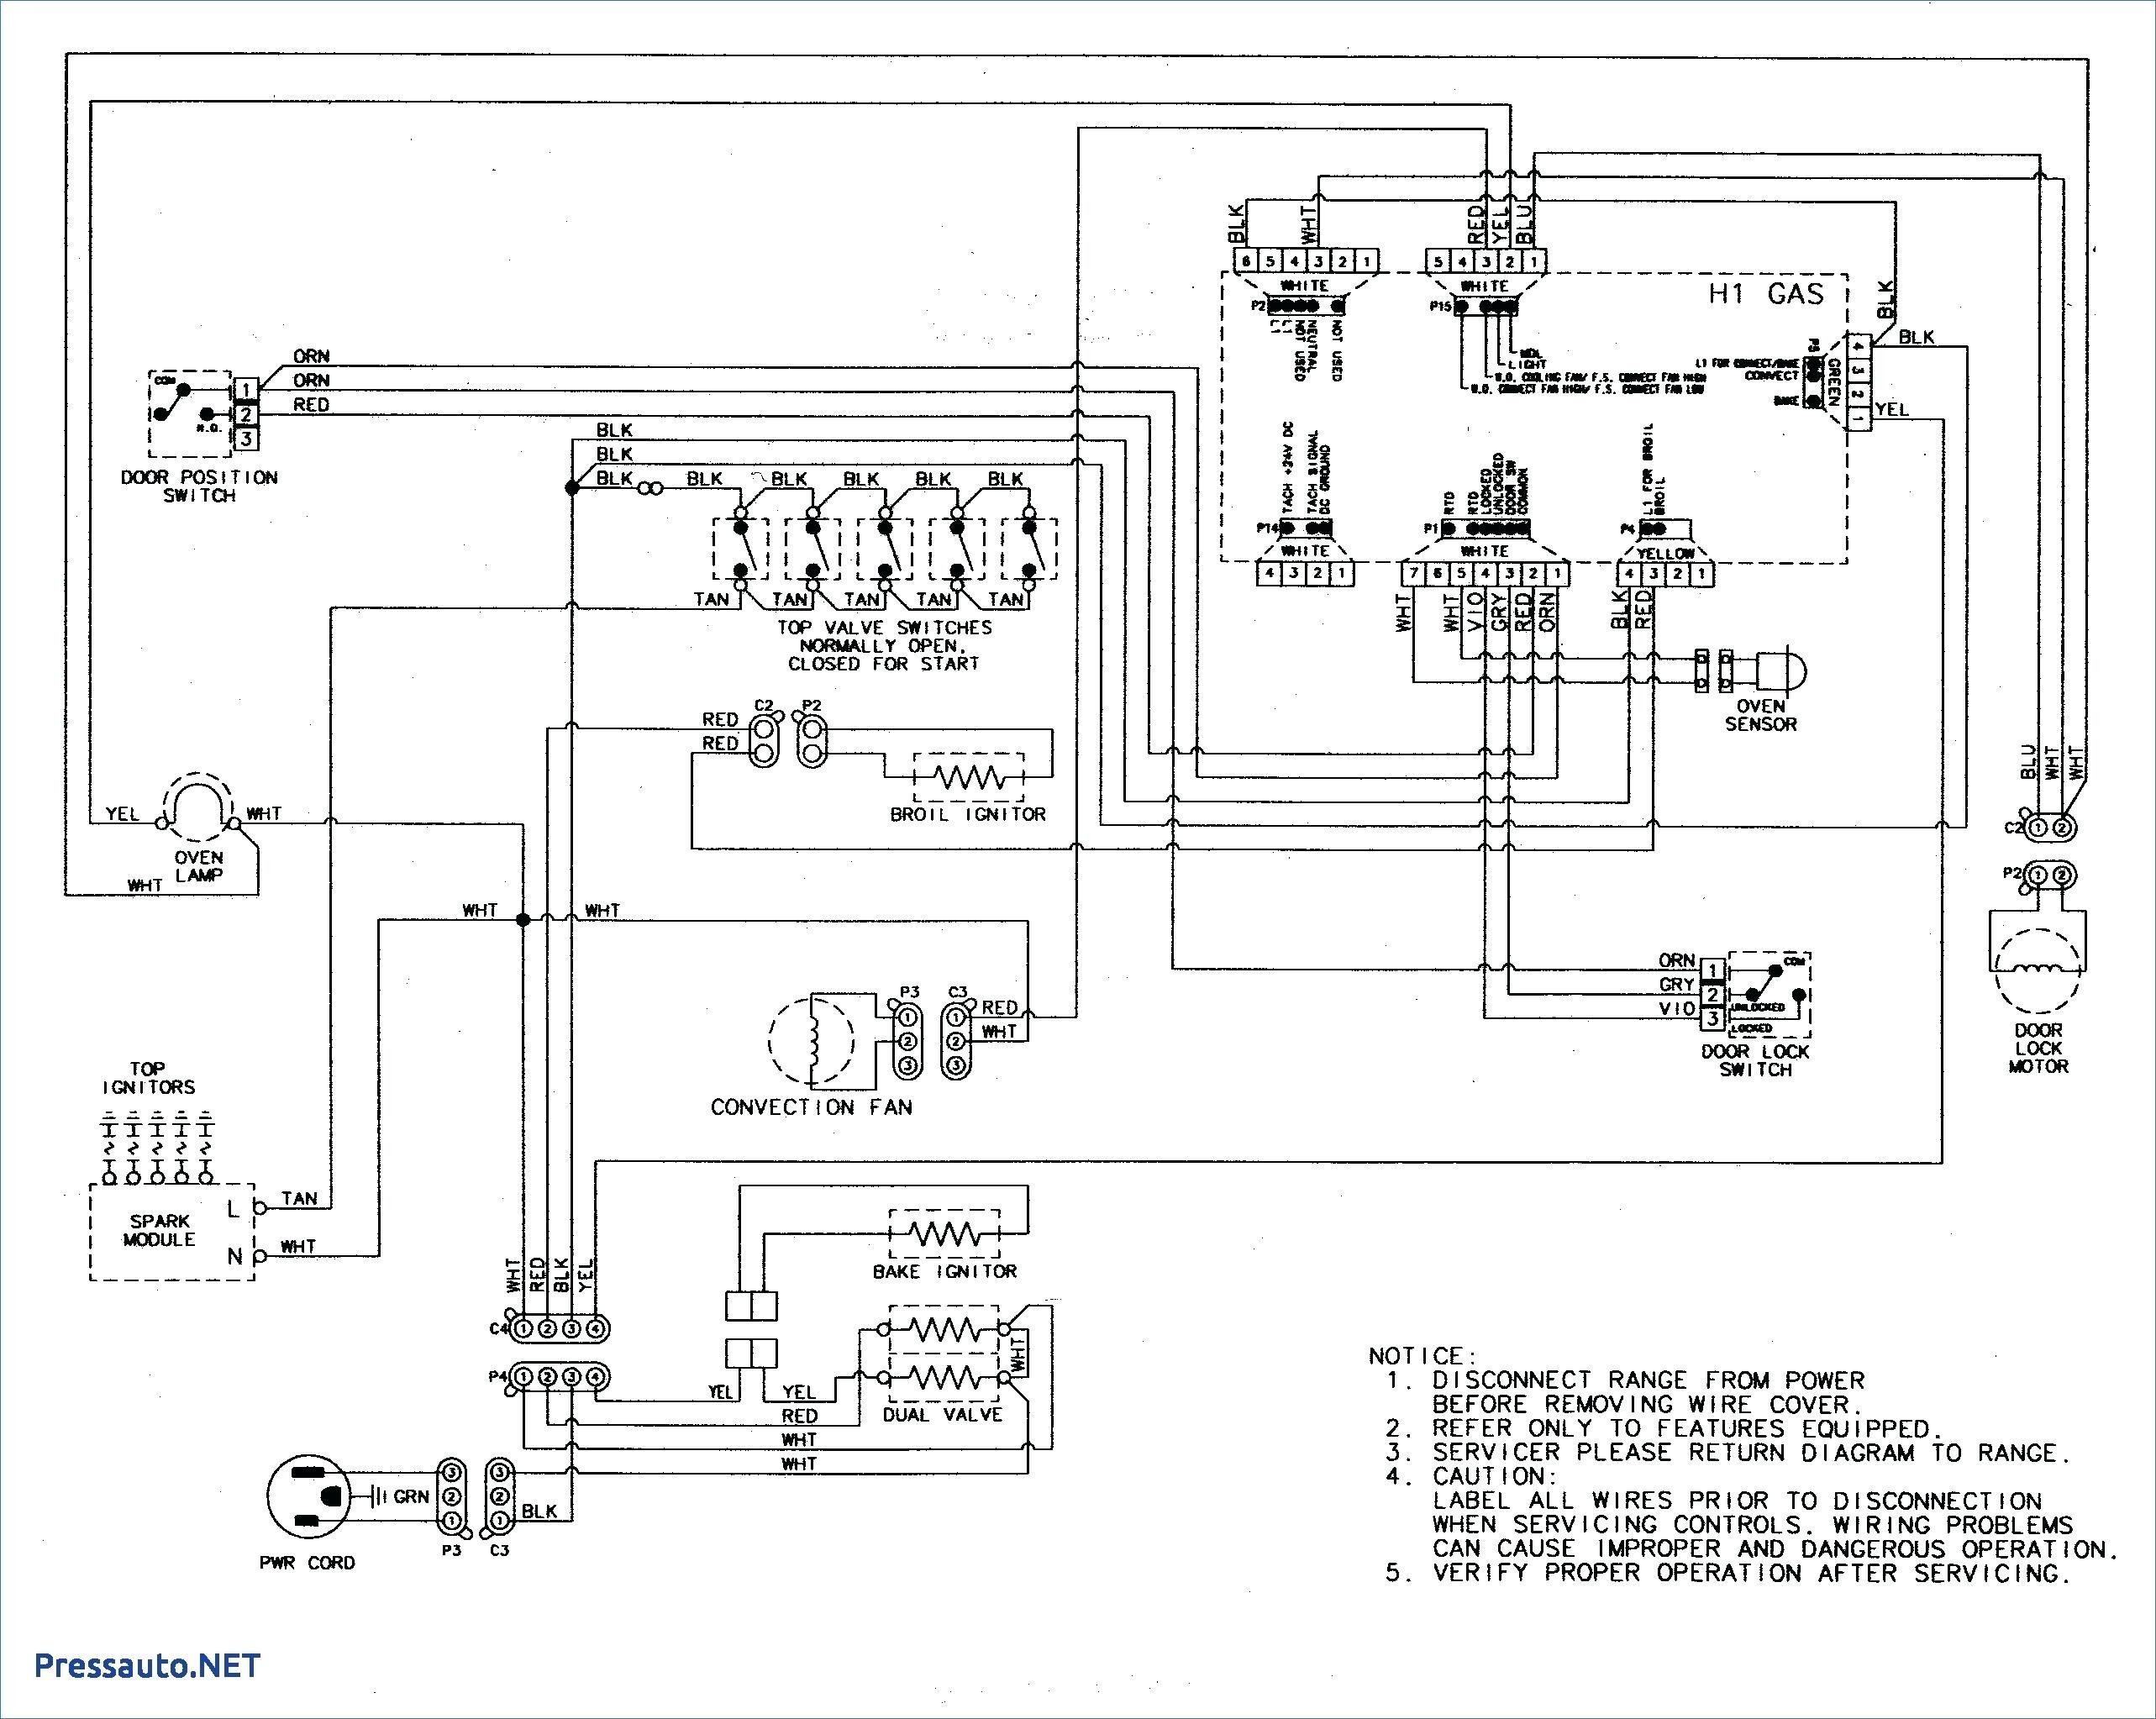 Car Ac Working Diagram Car Diagram Car Diagram Wiring for Auto Air